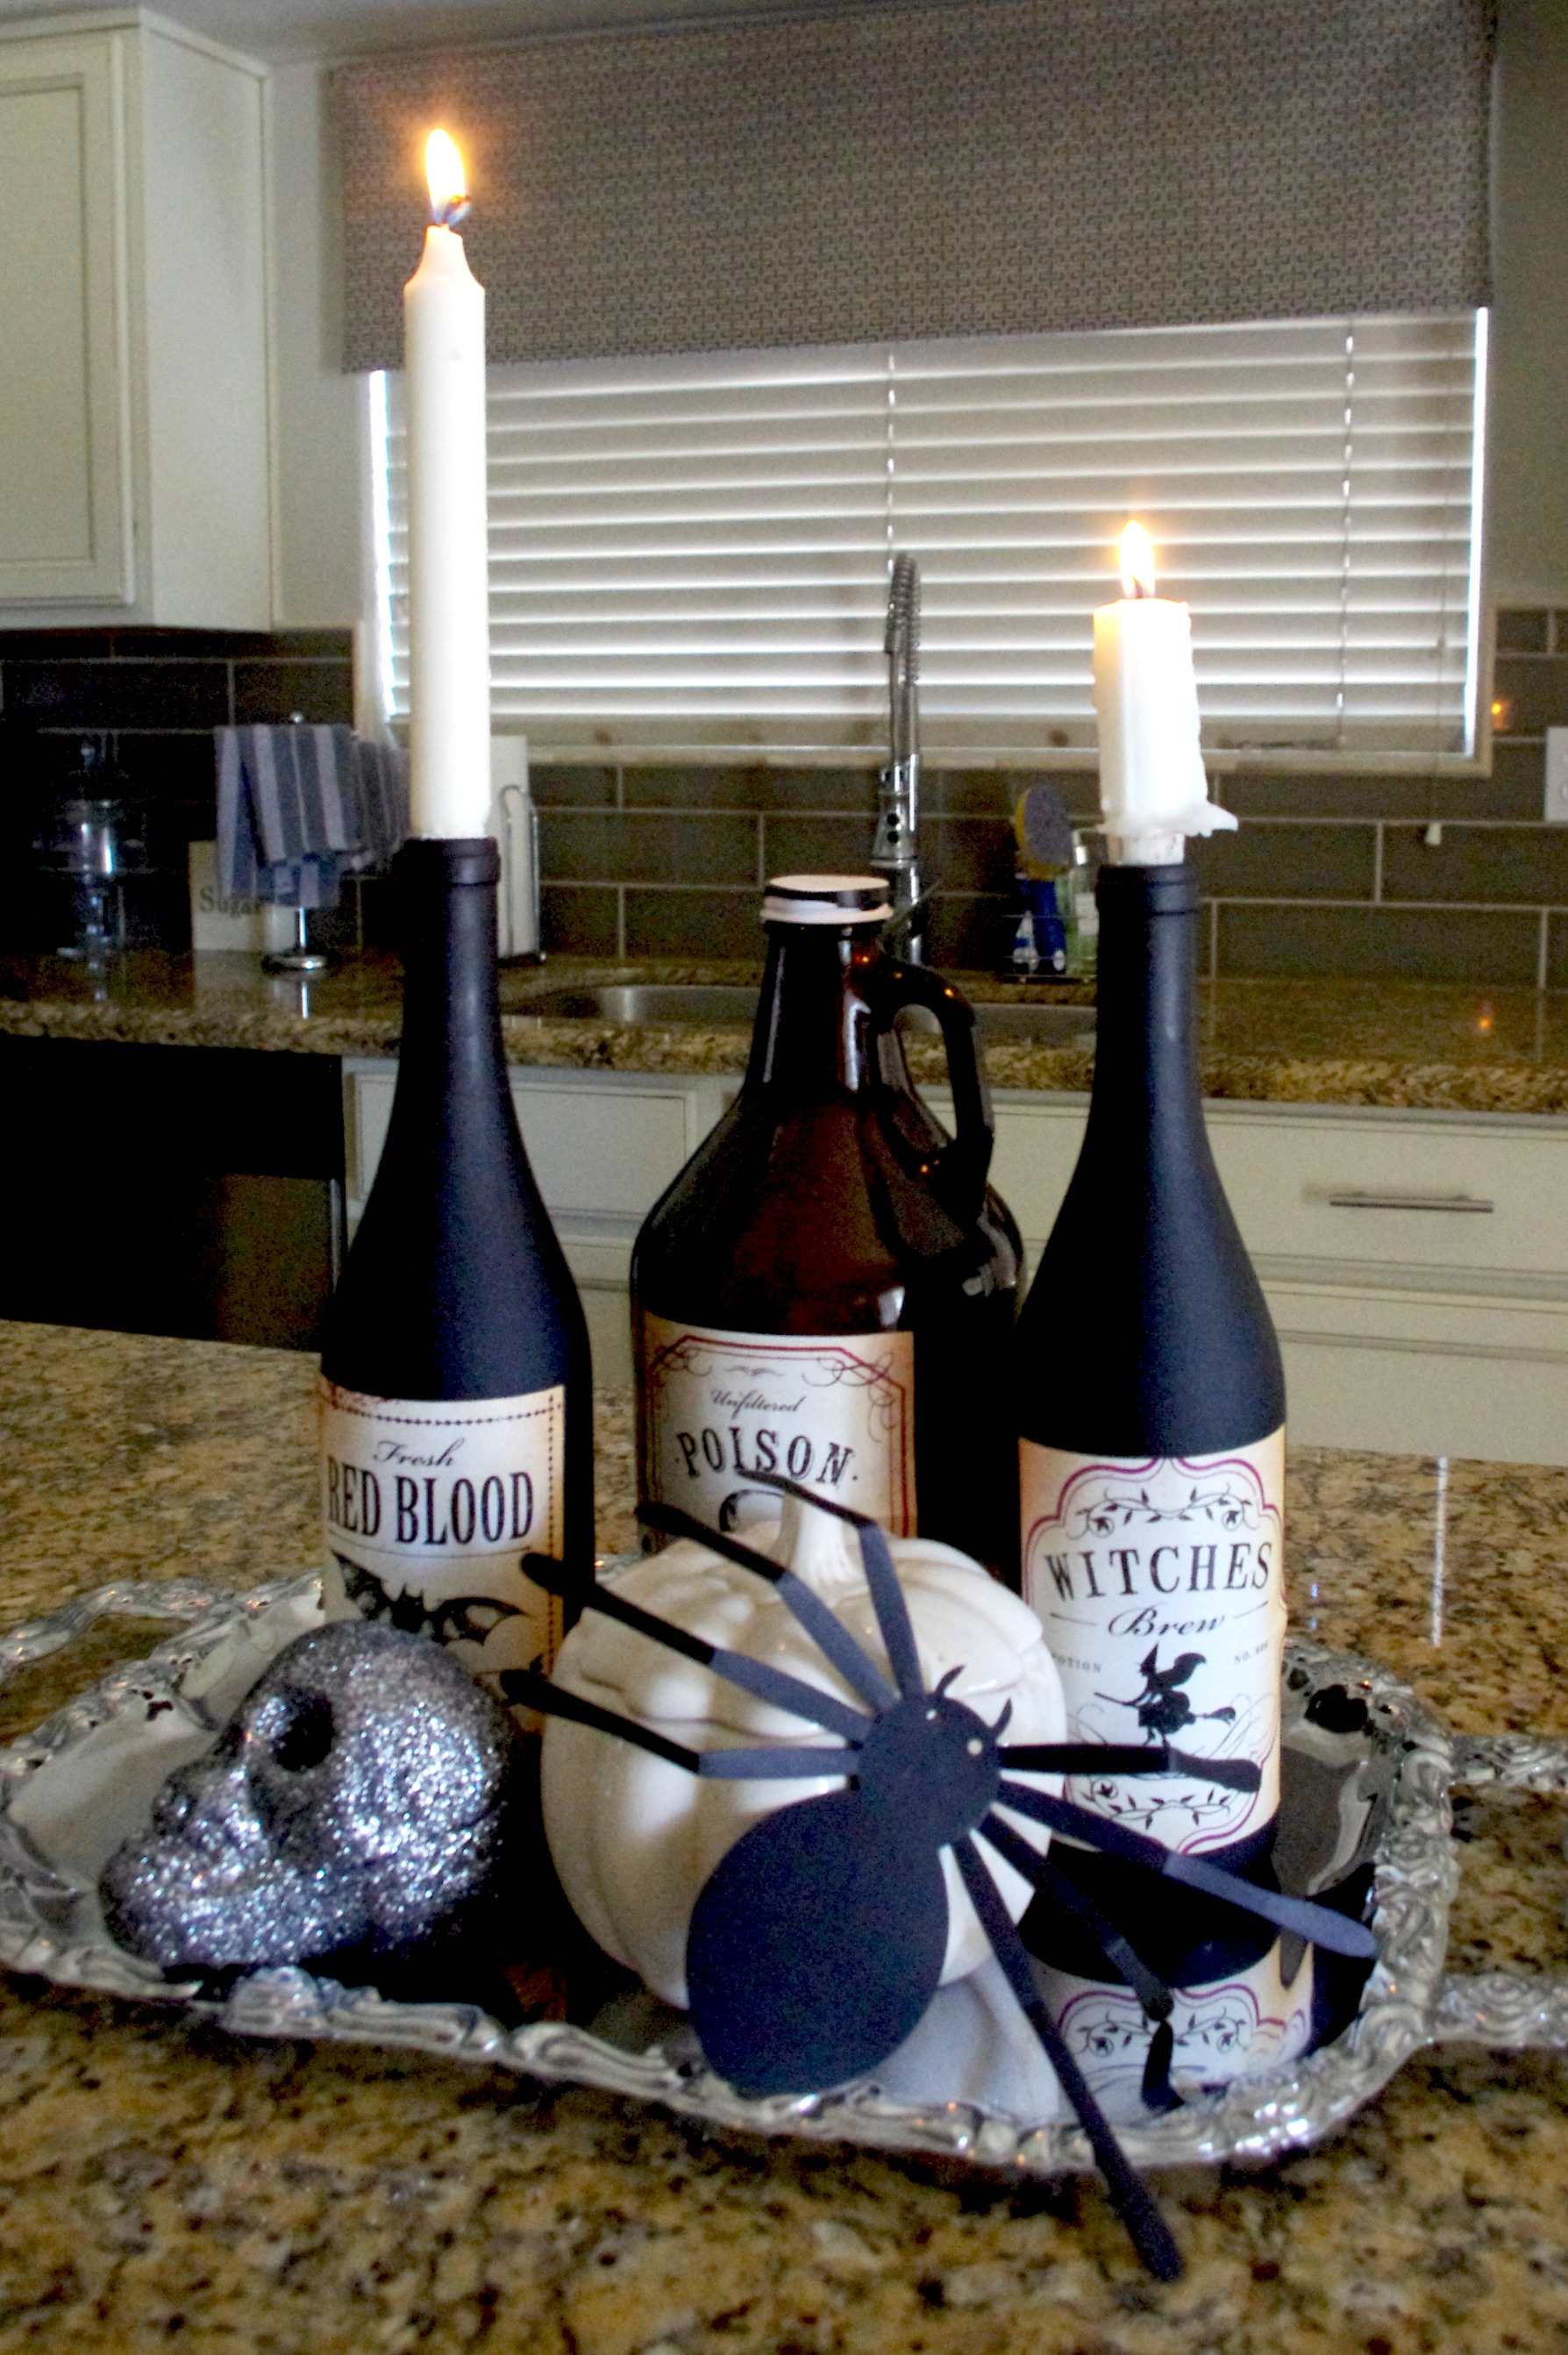 What to do with empty wine bottles - After Halloween Wine Bottles